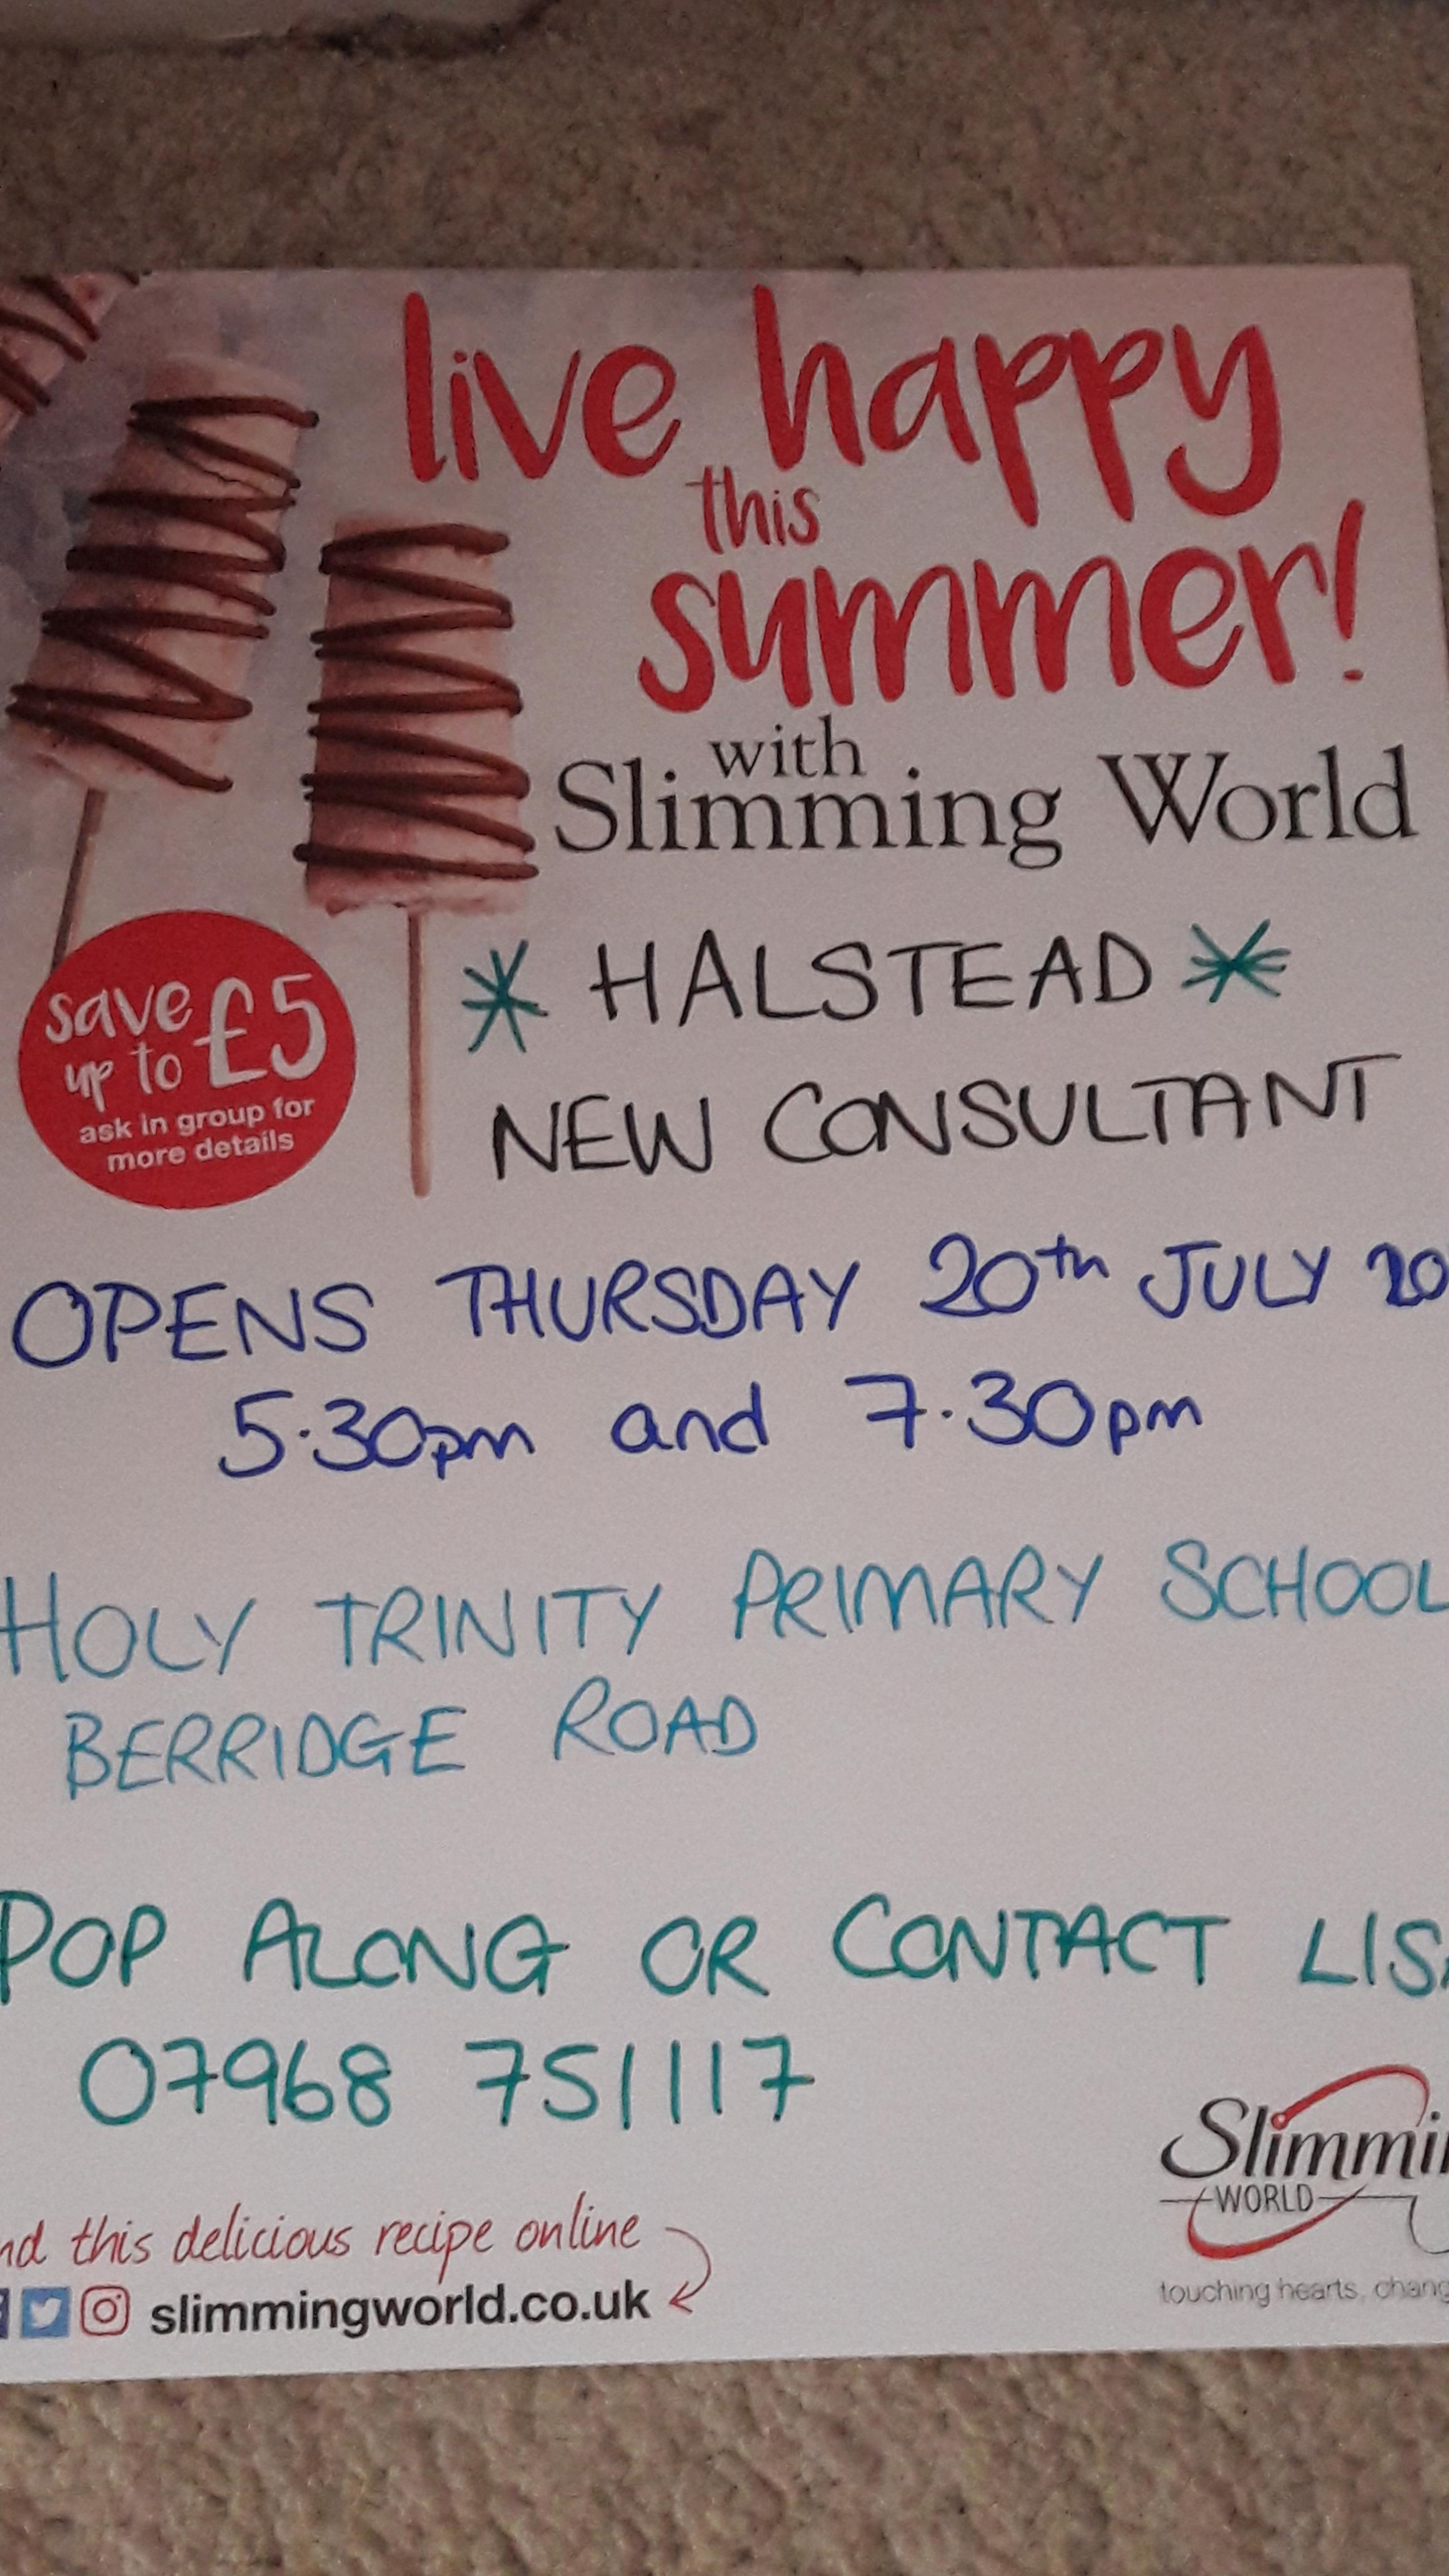 Slimming world Halstead Relaunch